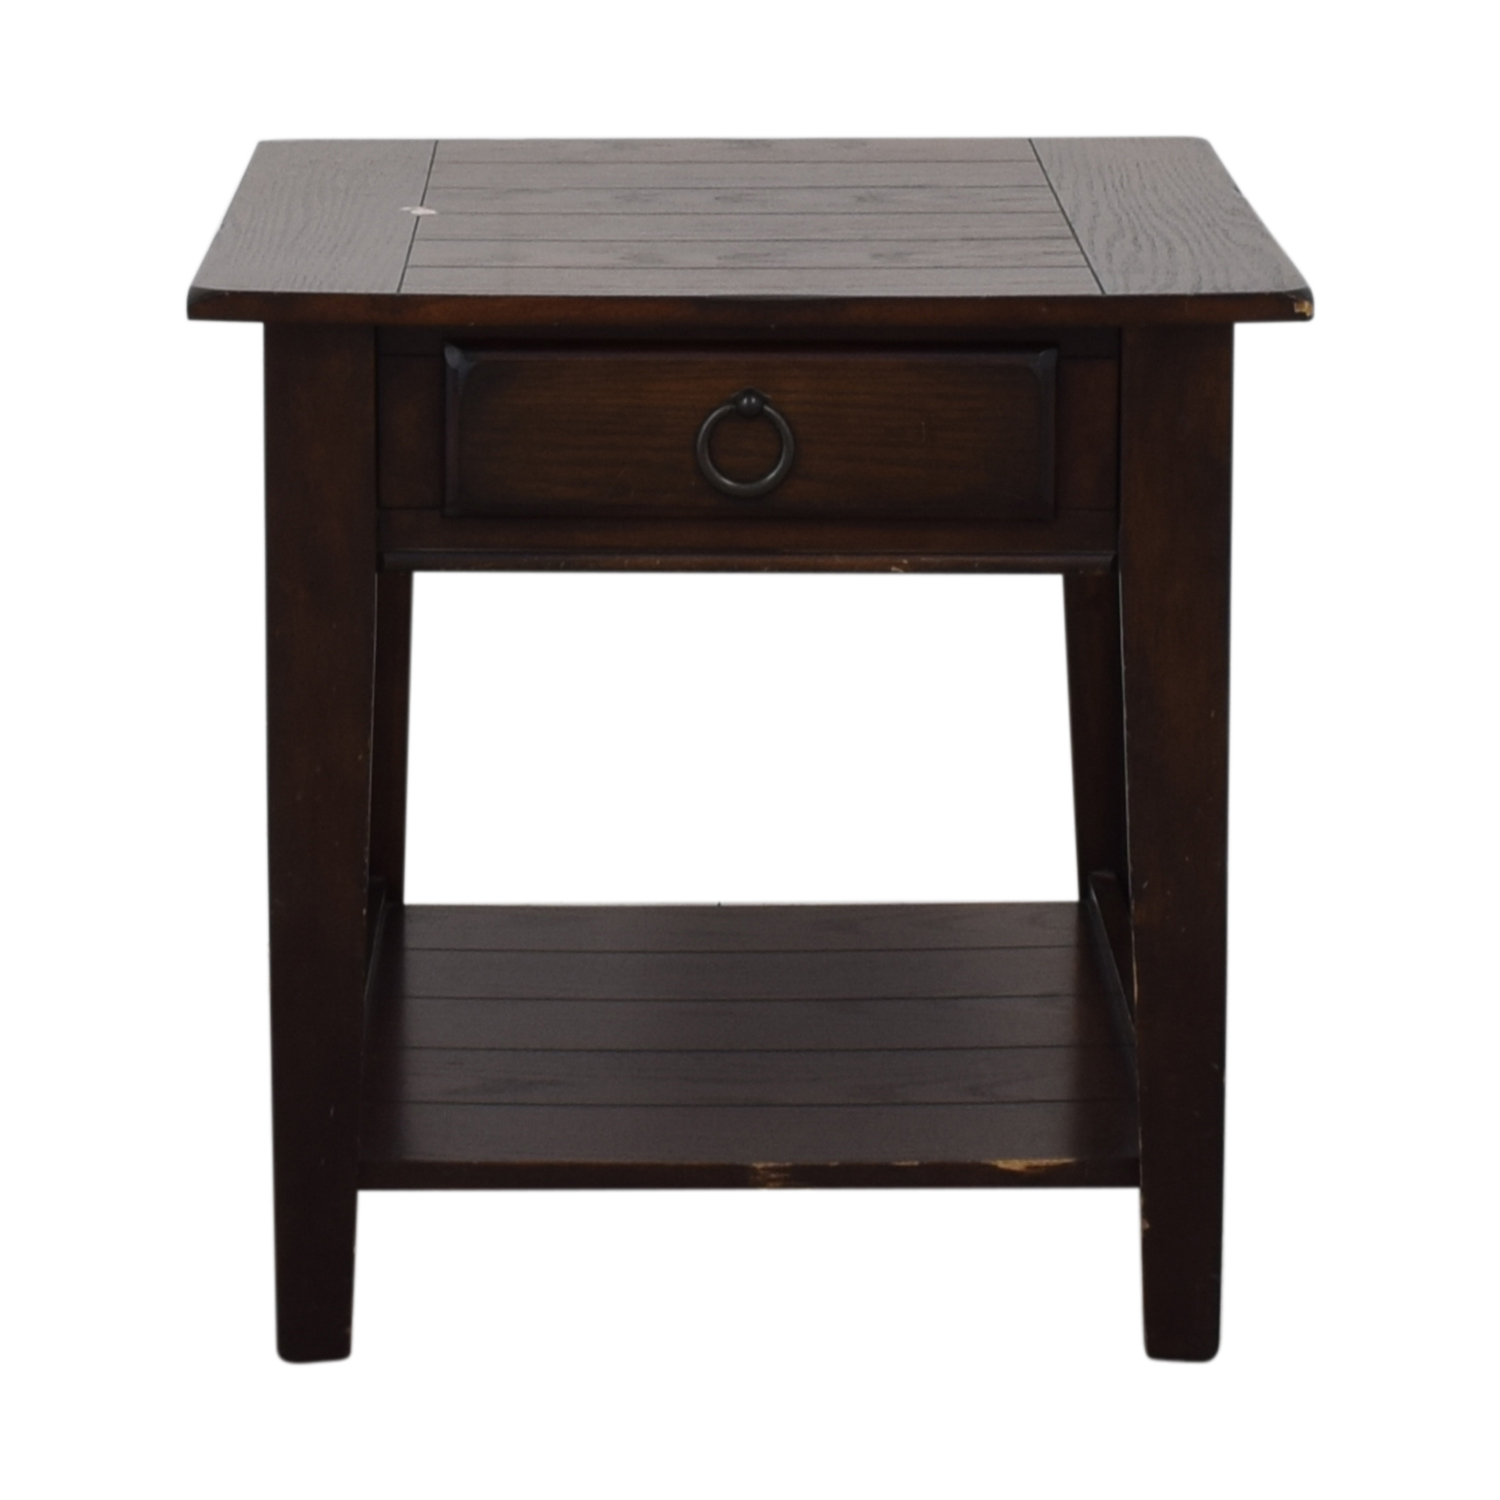 shop Bob's Discount Furniture Nightstand Bob's Discount Furniture End Tables